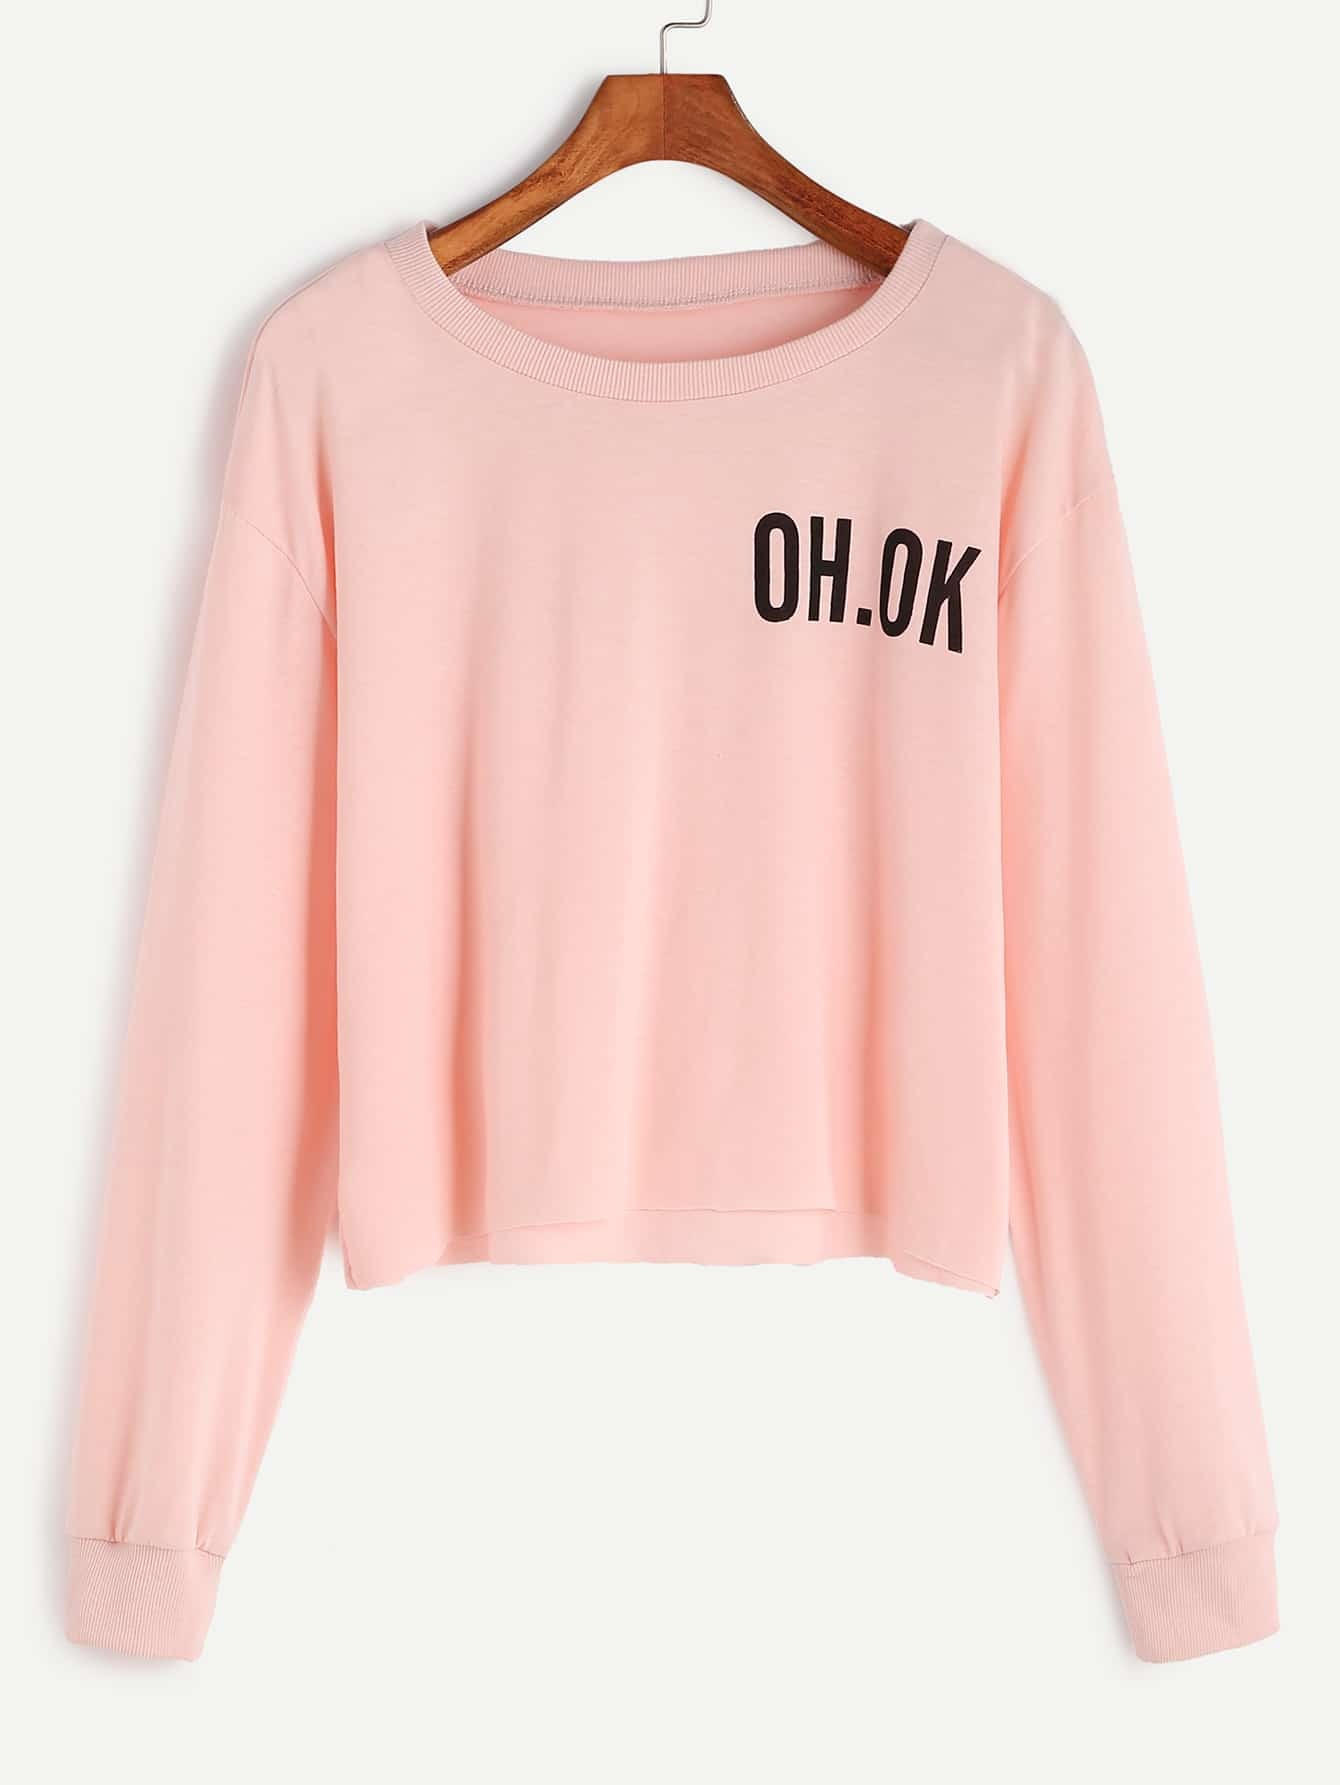 Pink Drop Shoulder Letter Print Raw Hem Crop Sweatshirt sweatshirt161128001